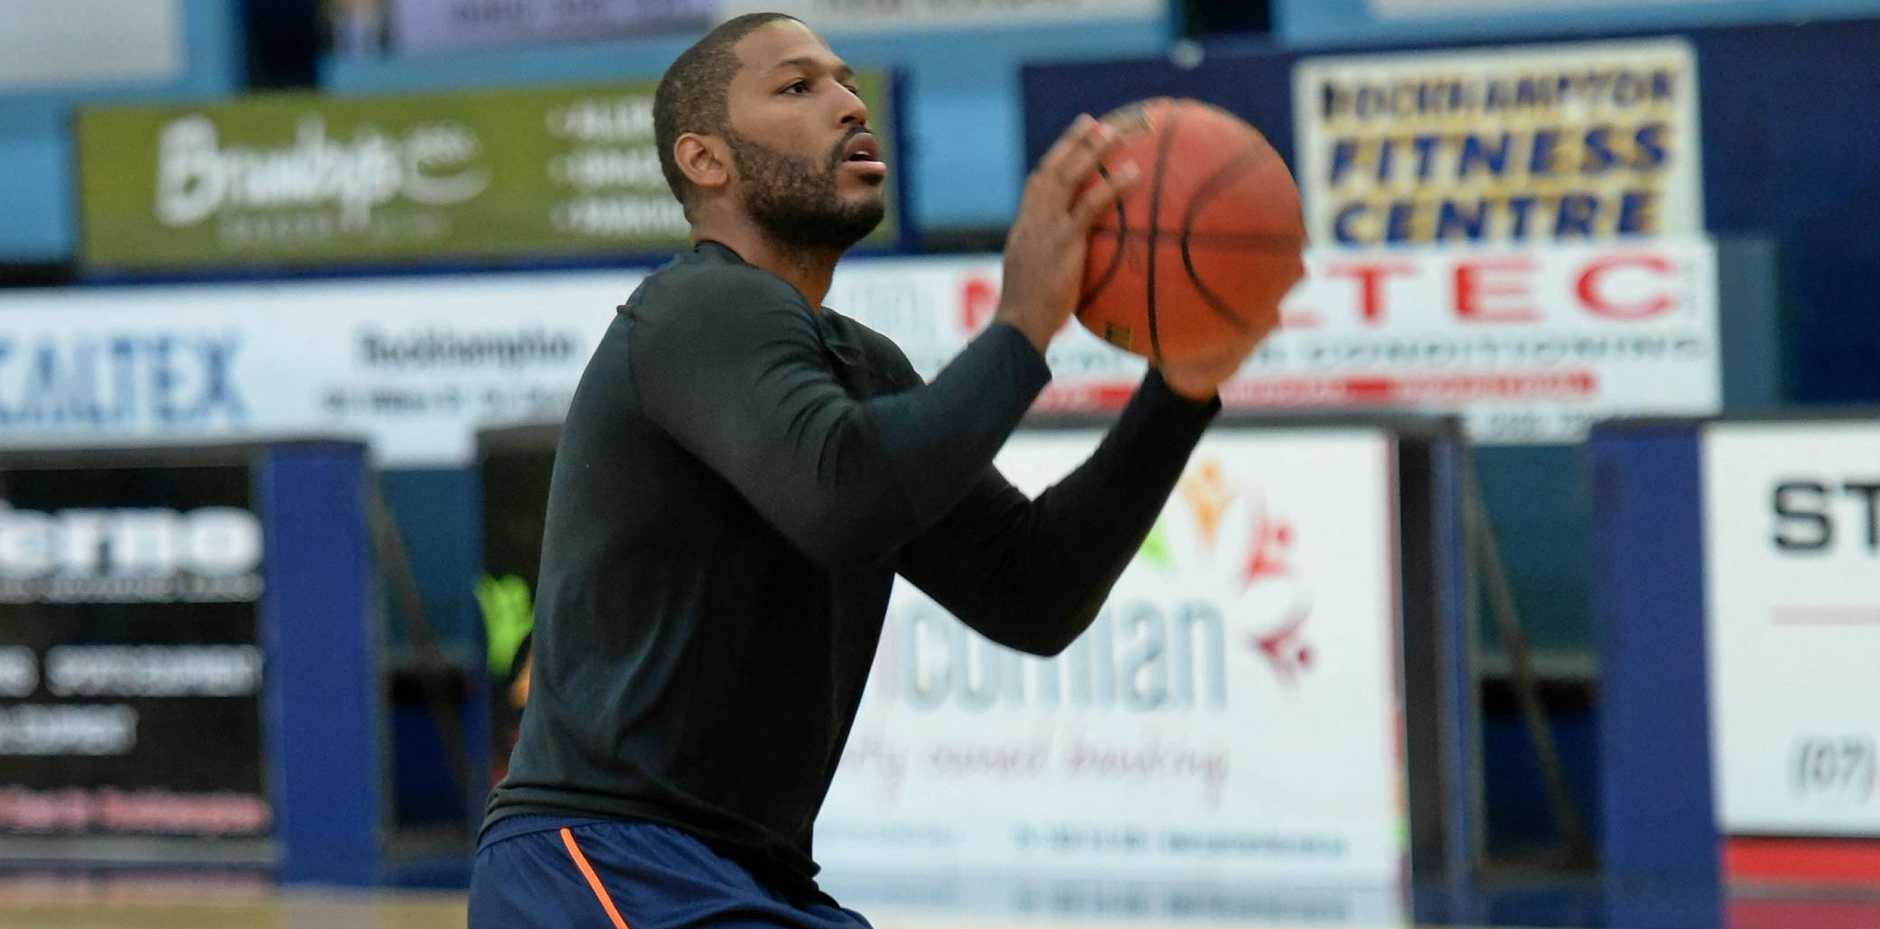 The CQUniversity Cairns Taipans hit the court at Hegvold Stadium this week before tonight's showdown with the Brisbane Bullets.